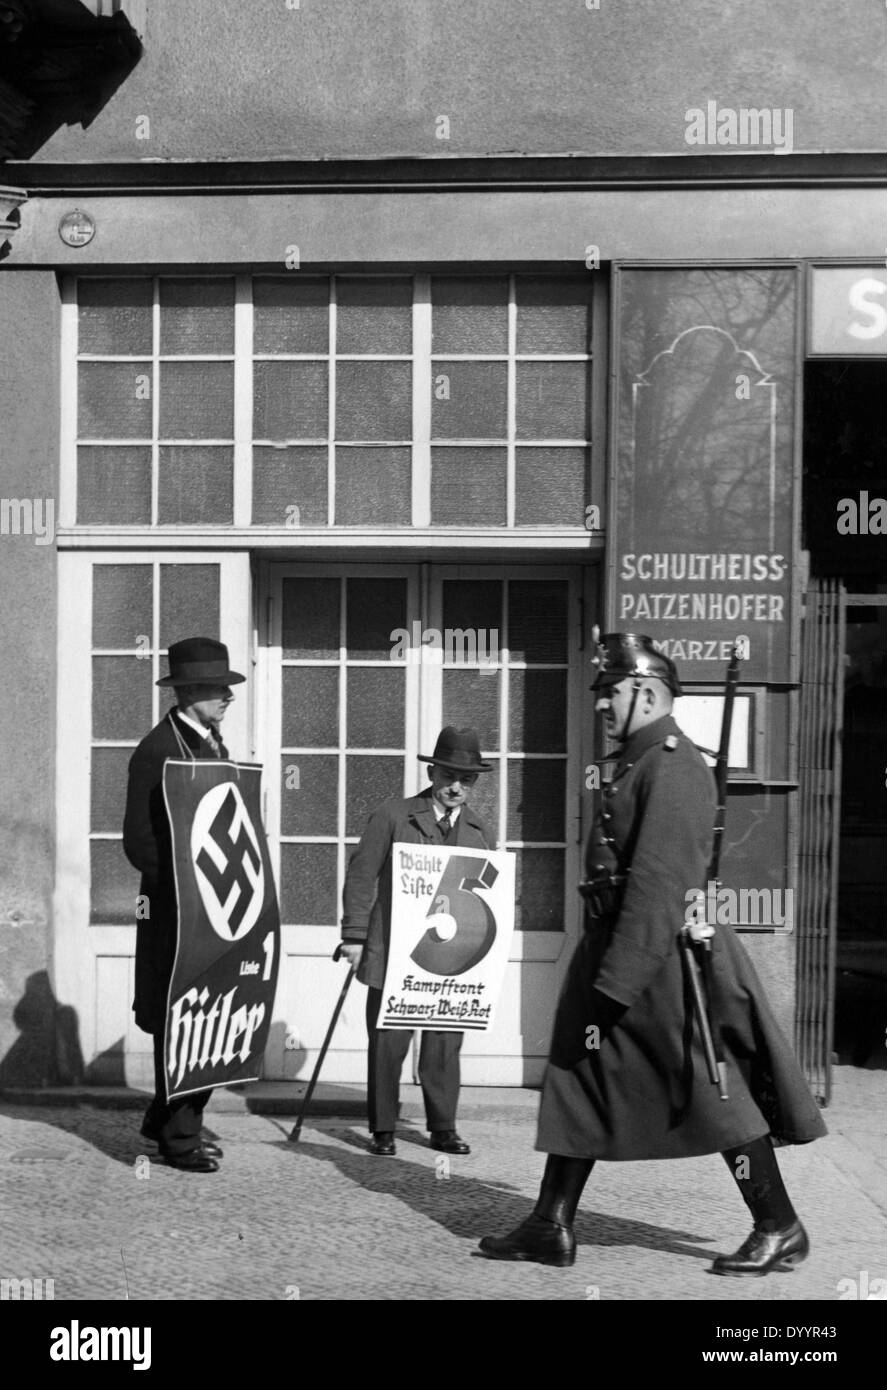 Men with election posters, 1933 - Stock Image